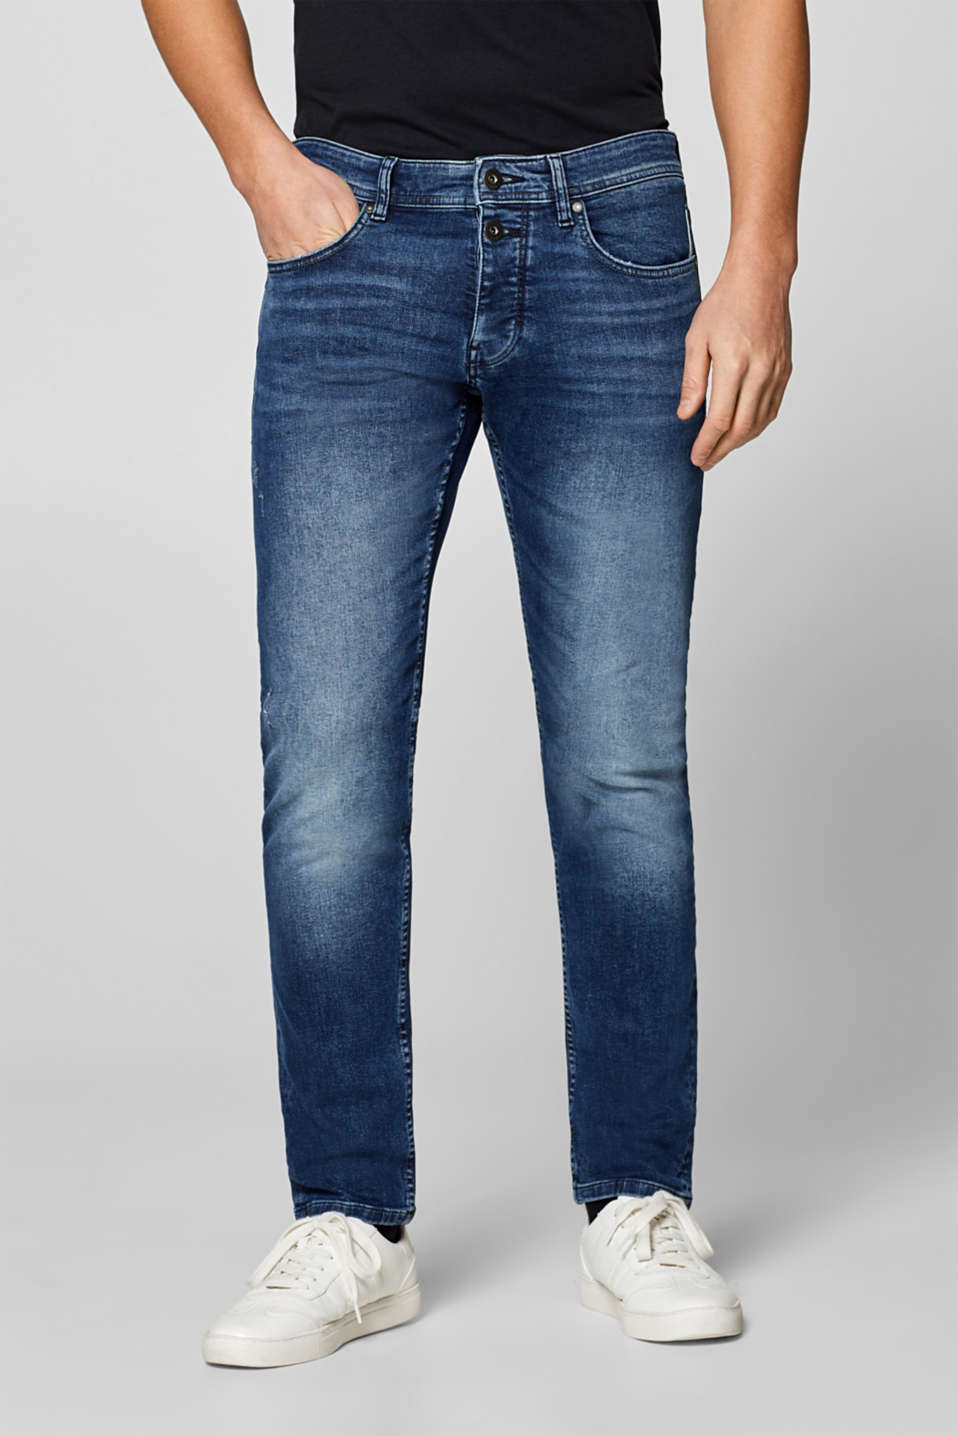 edc - Stretch jeans with a button fly